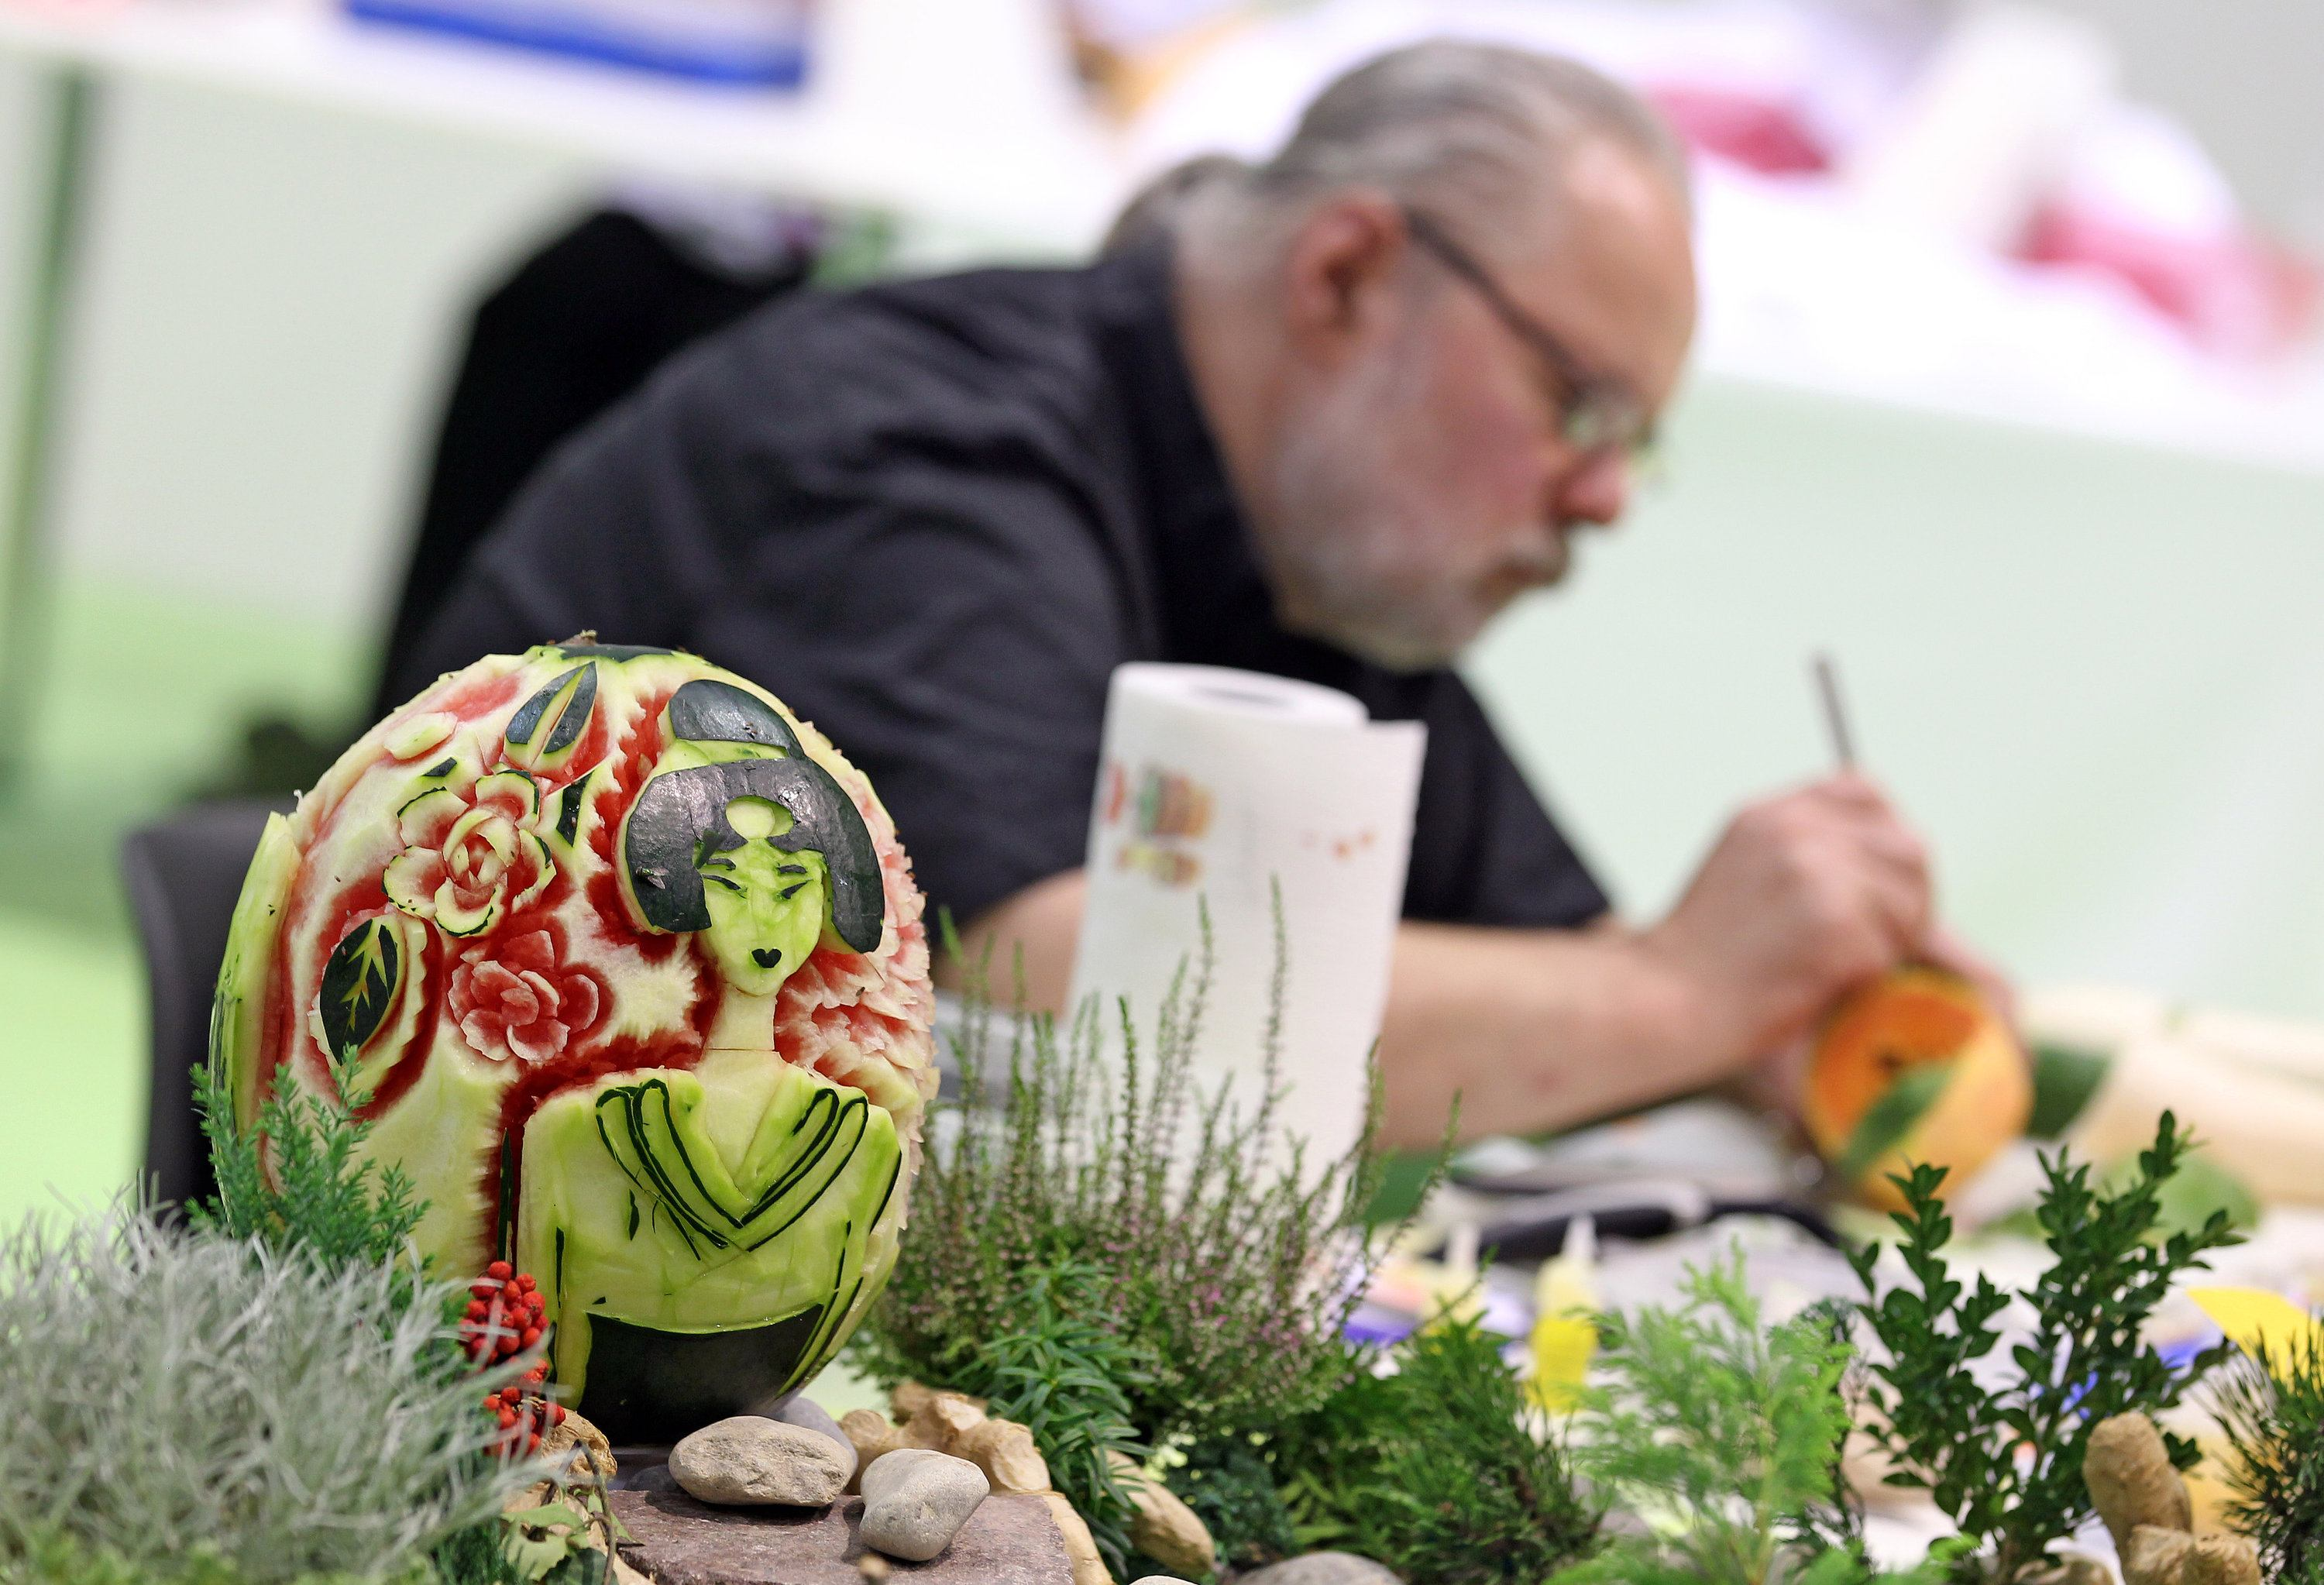 a german artist demonstrates fruit carving with a melon